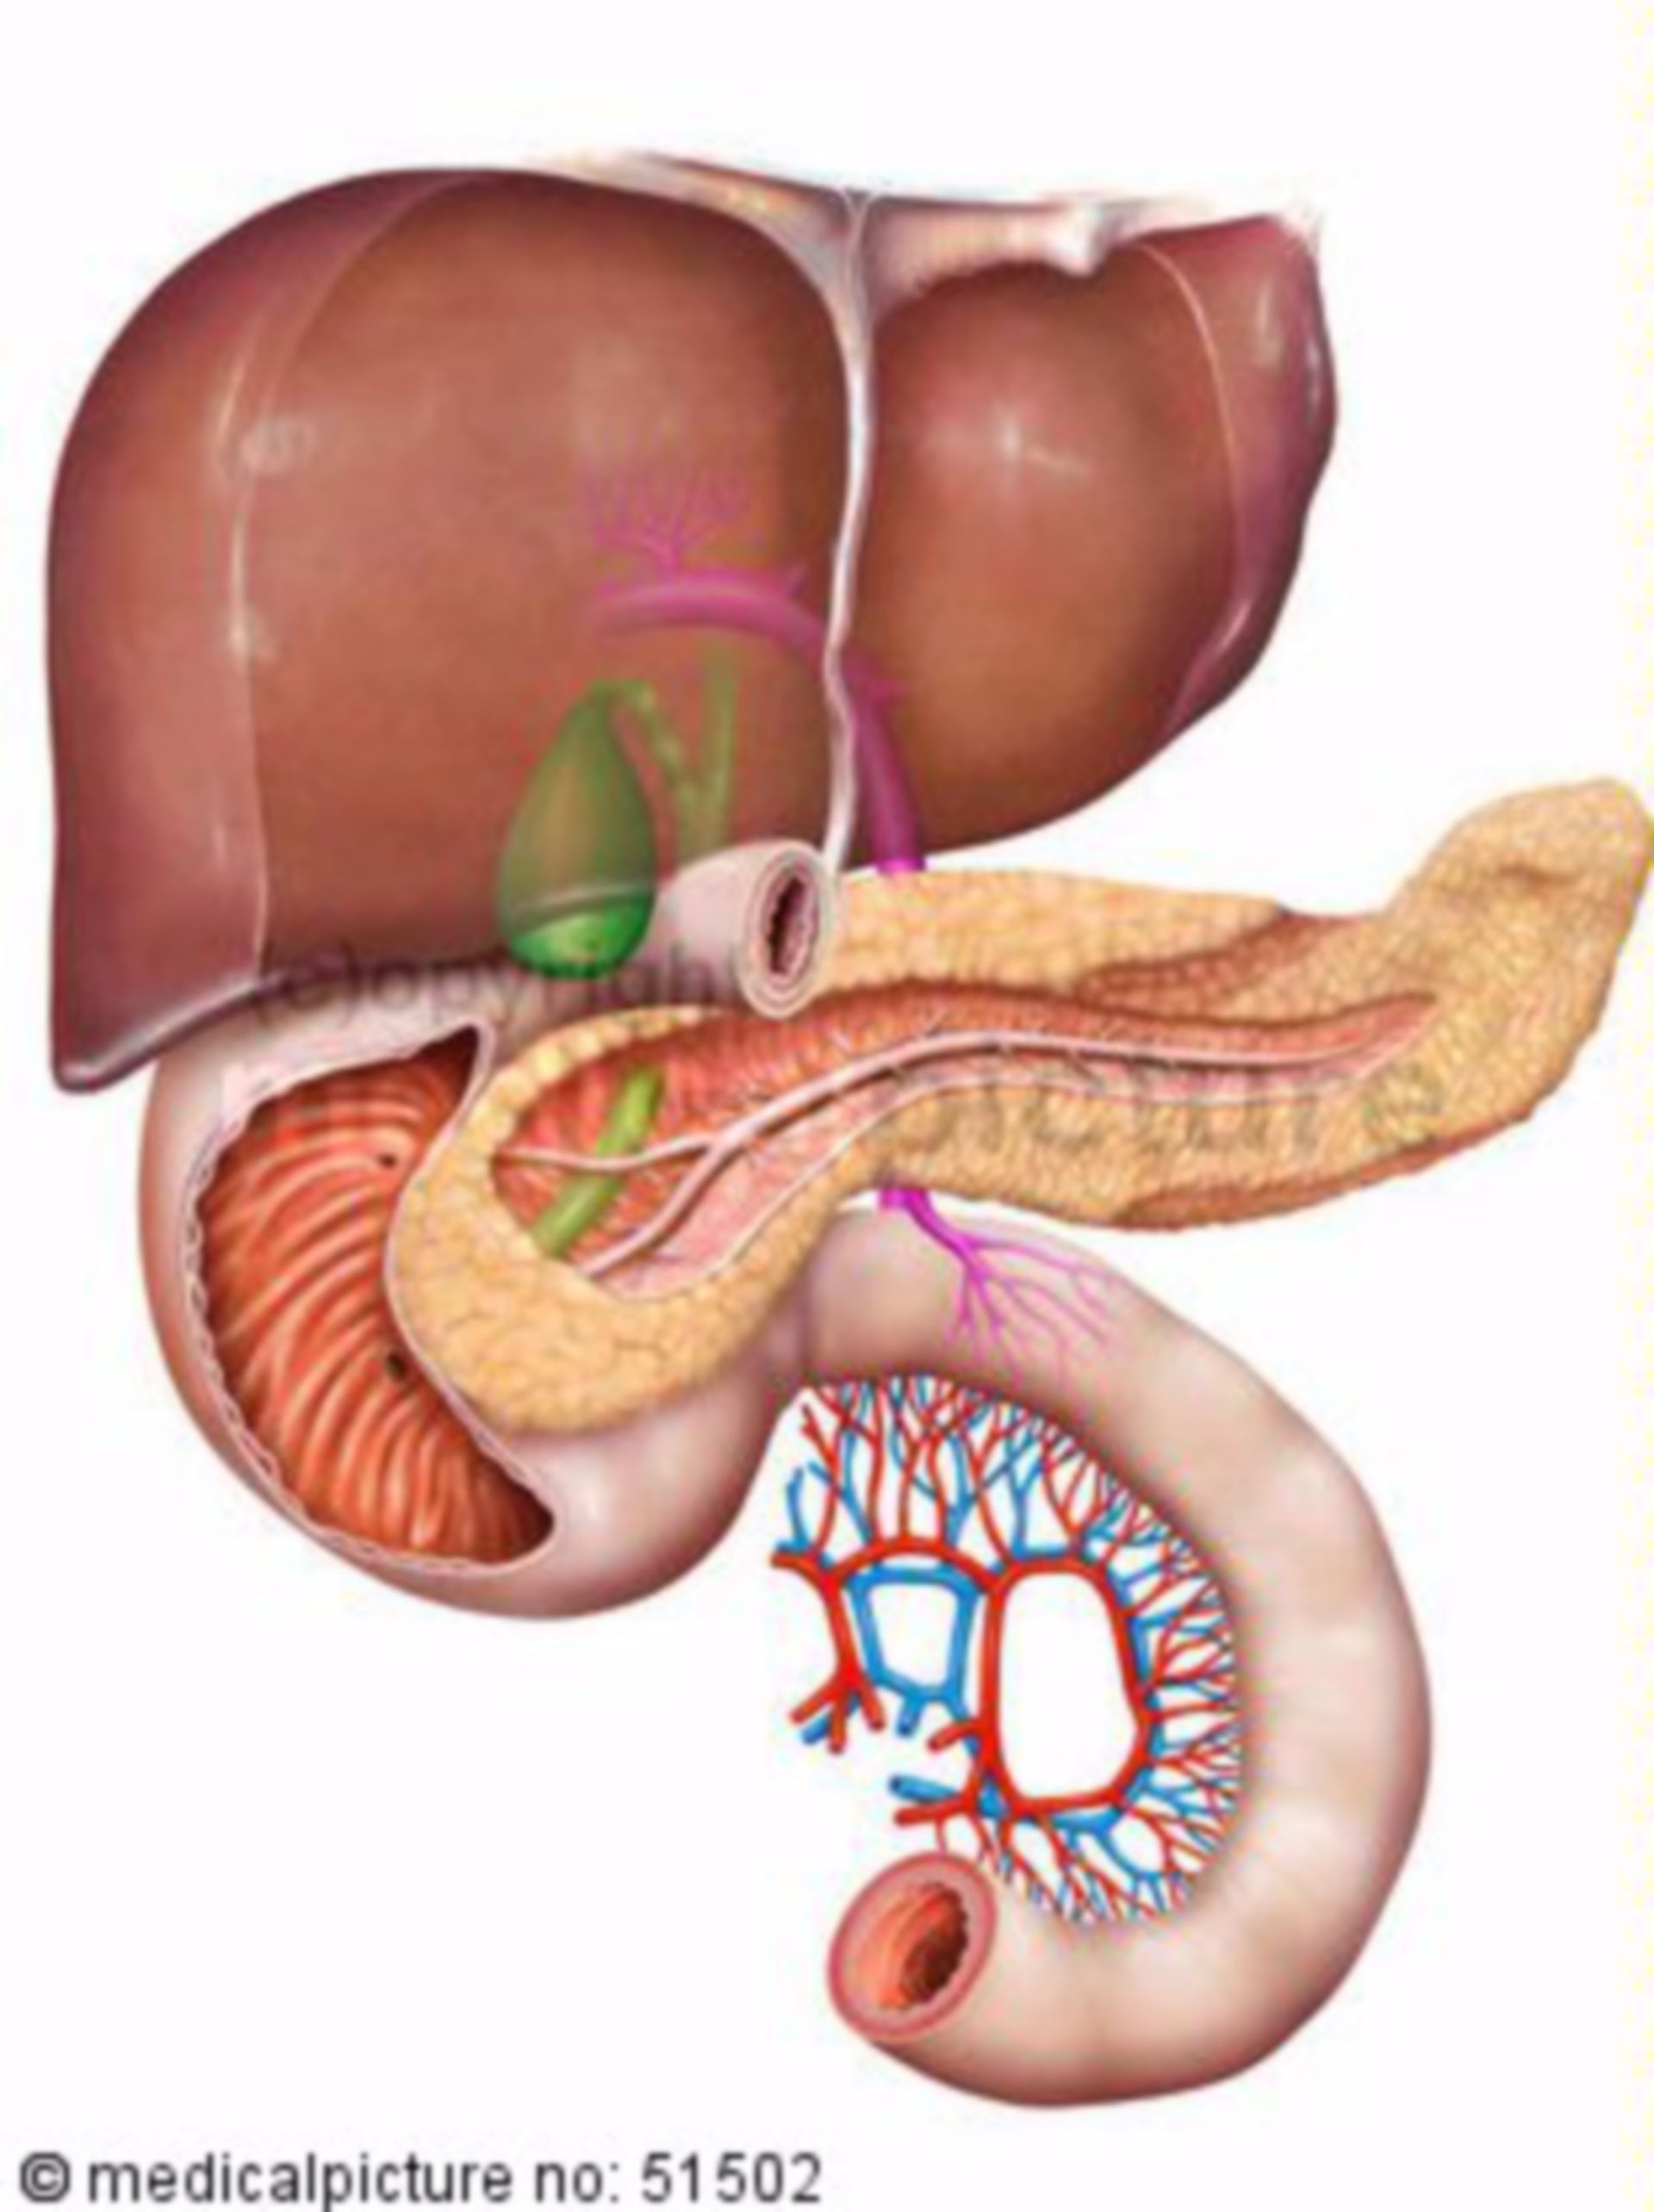 Fegato, pancreas e intestino tenue